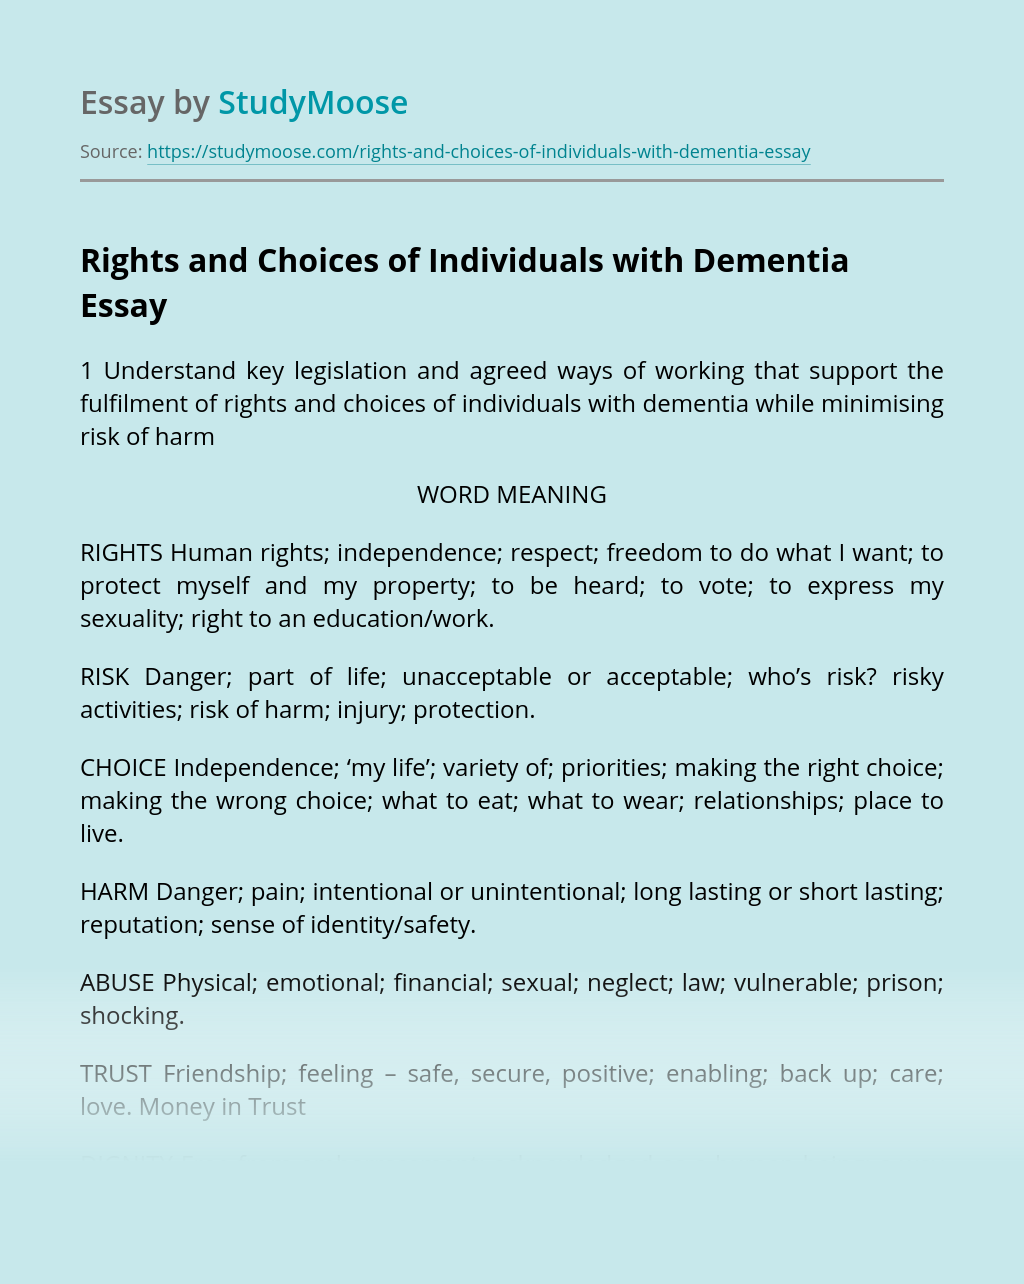 Rights and Choices of Individuals with Dementia